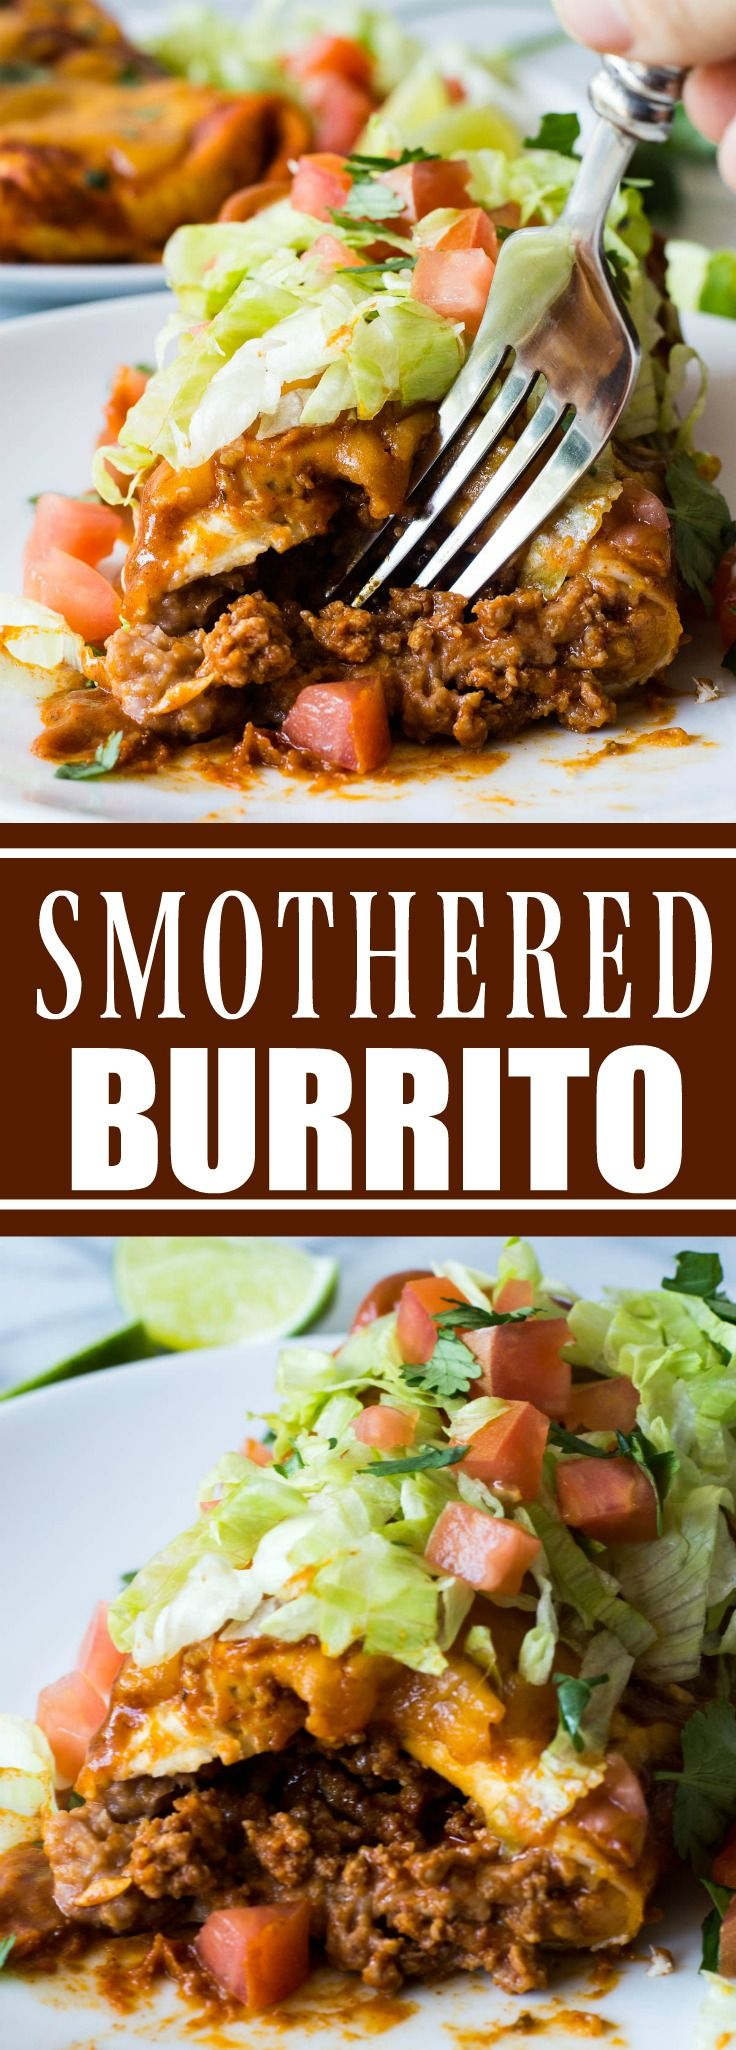 Smothered Burrito! These large burritos are bursting with ground beef simmered in a homemade taco seasoning, smooth and creamy refried beans, and lots of melty cheese! Then smothered in homemade chili gravy and even more cheese! Hearty, savory, and comforting! These easy smothered burritos will quickly become a favorite dinner!